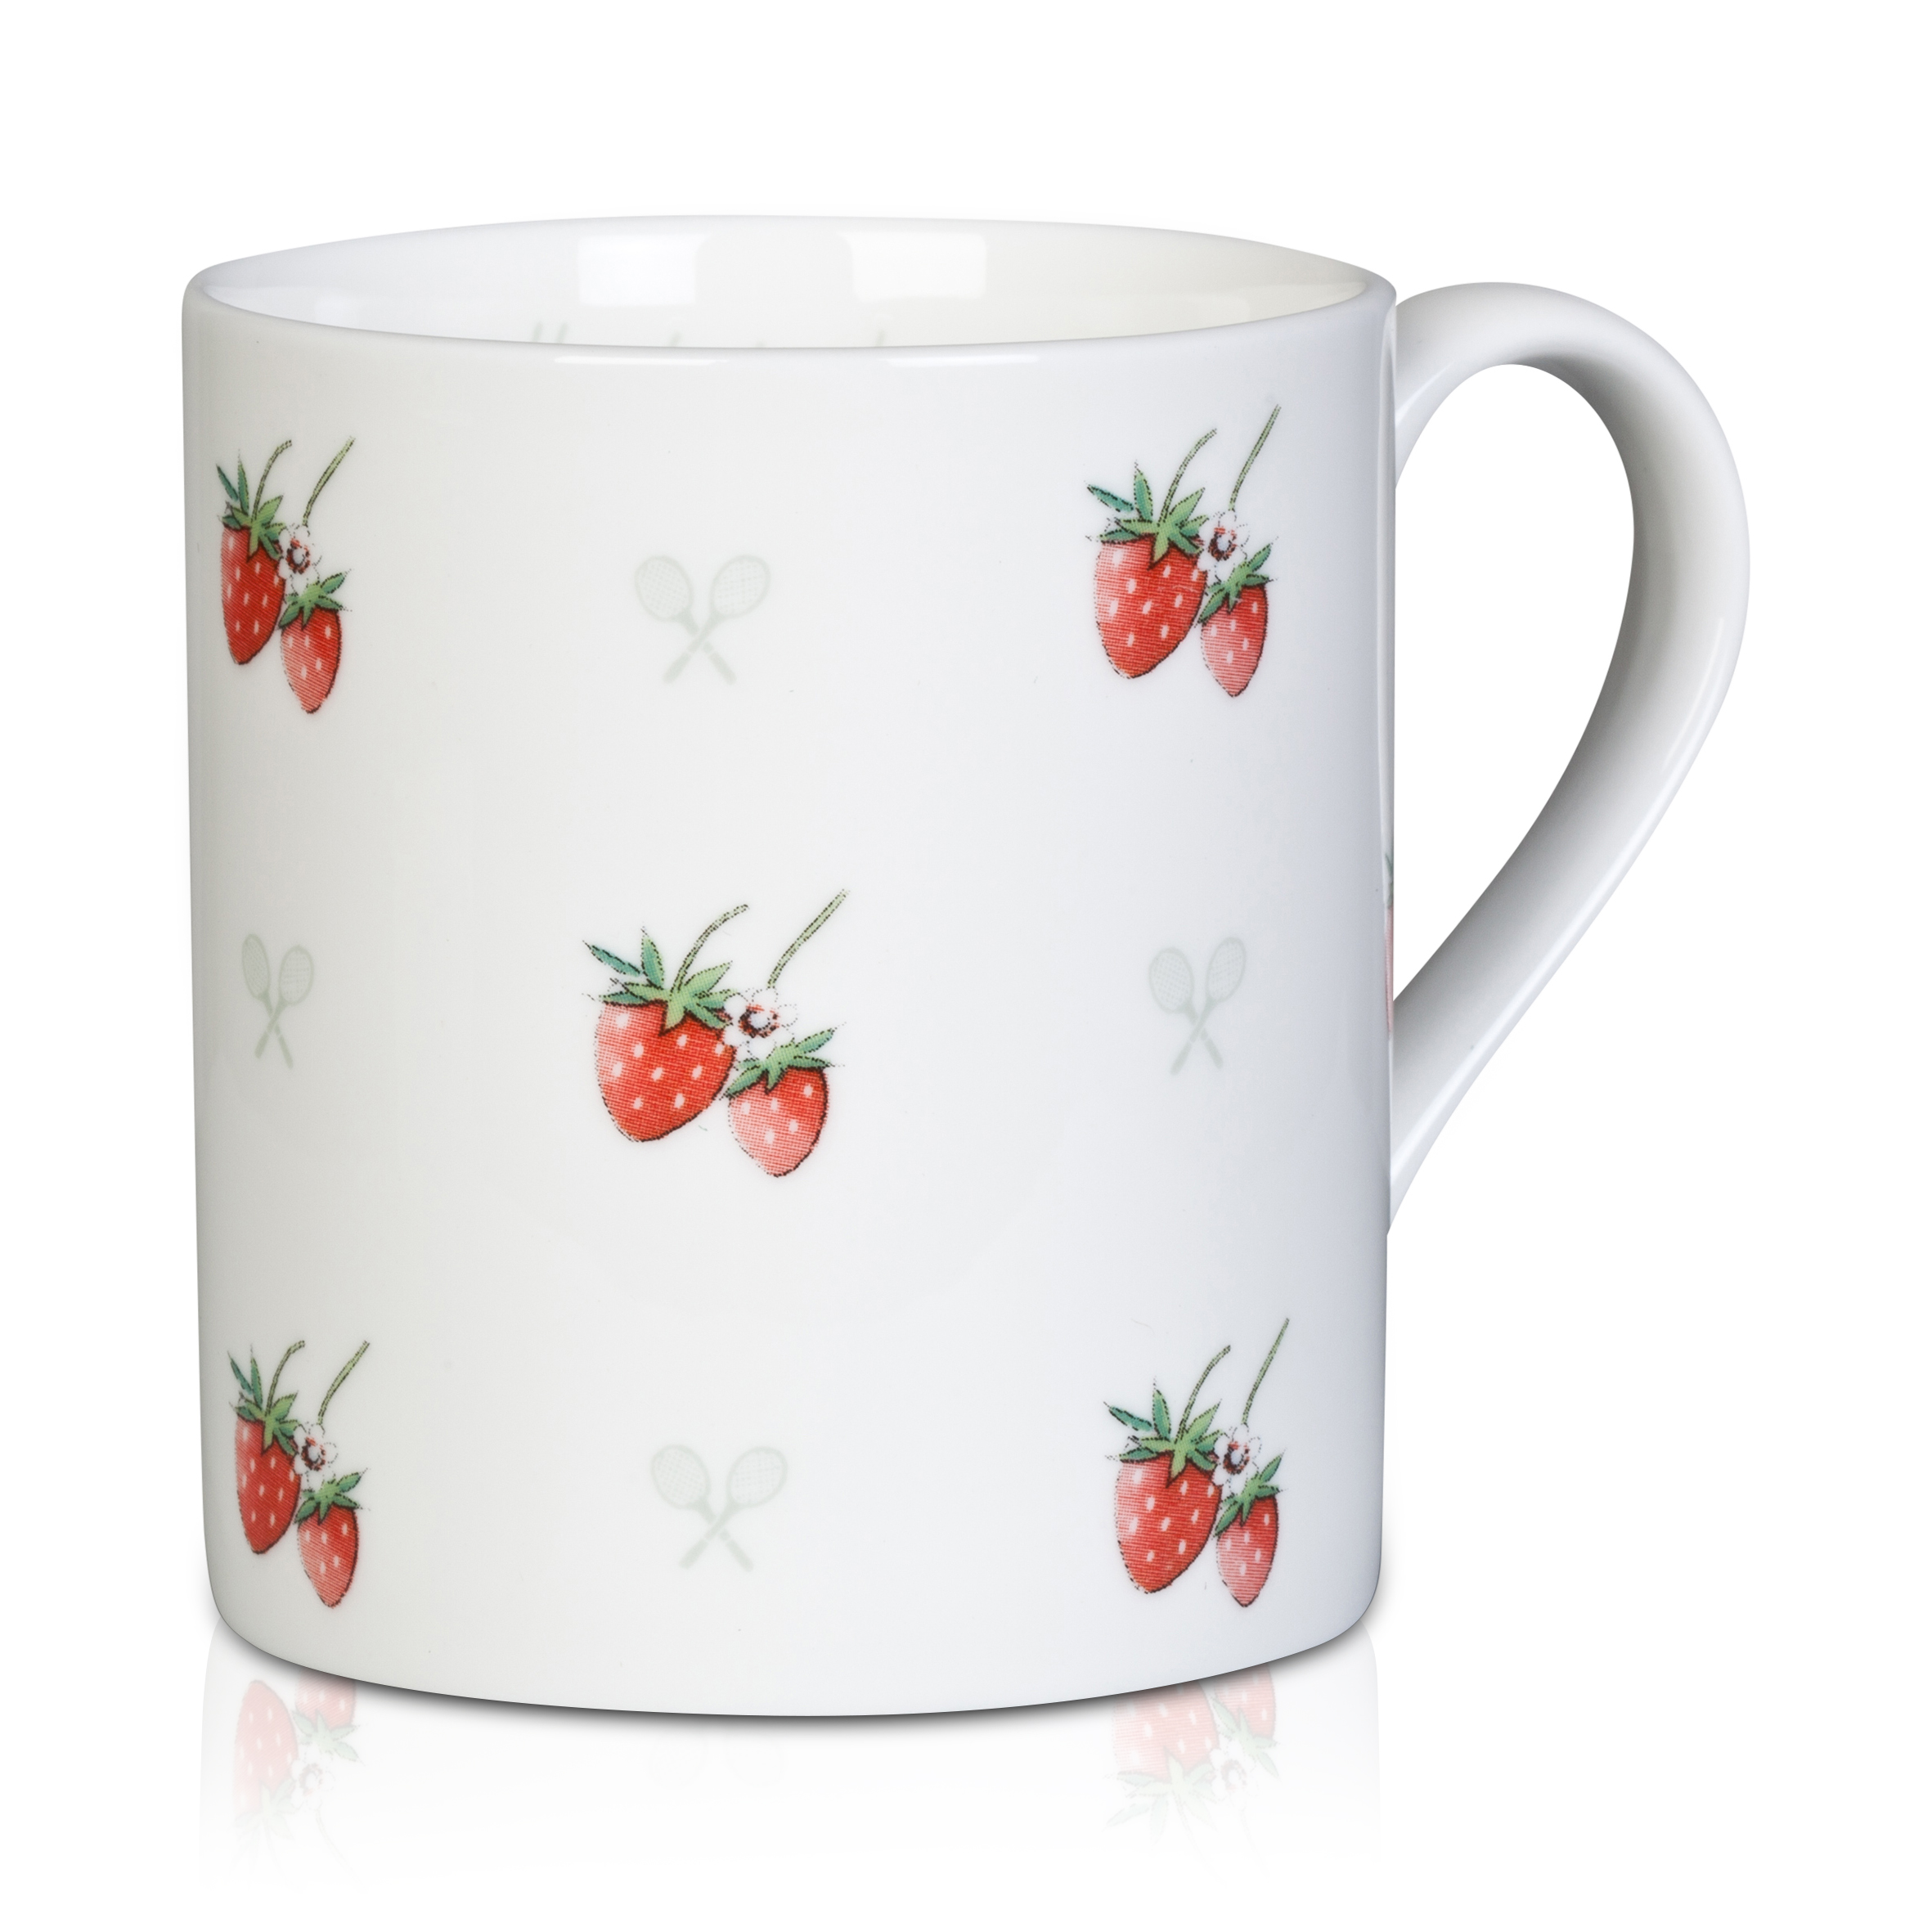 Wimbledon 'Perfect Match' Mug - White